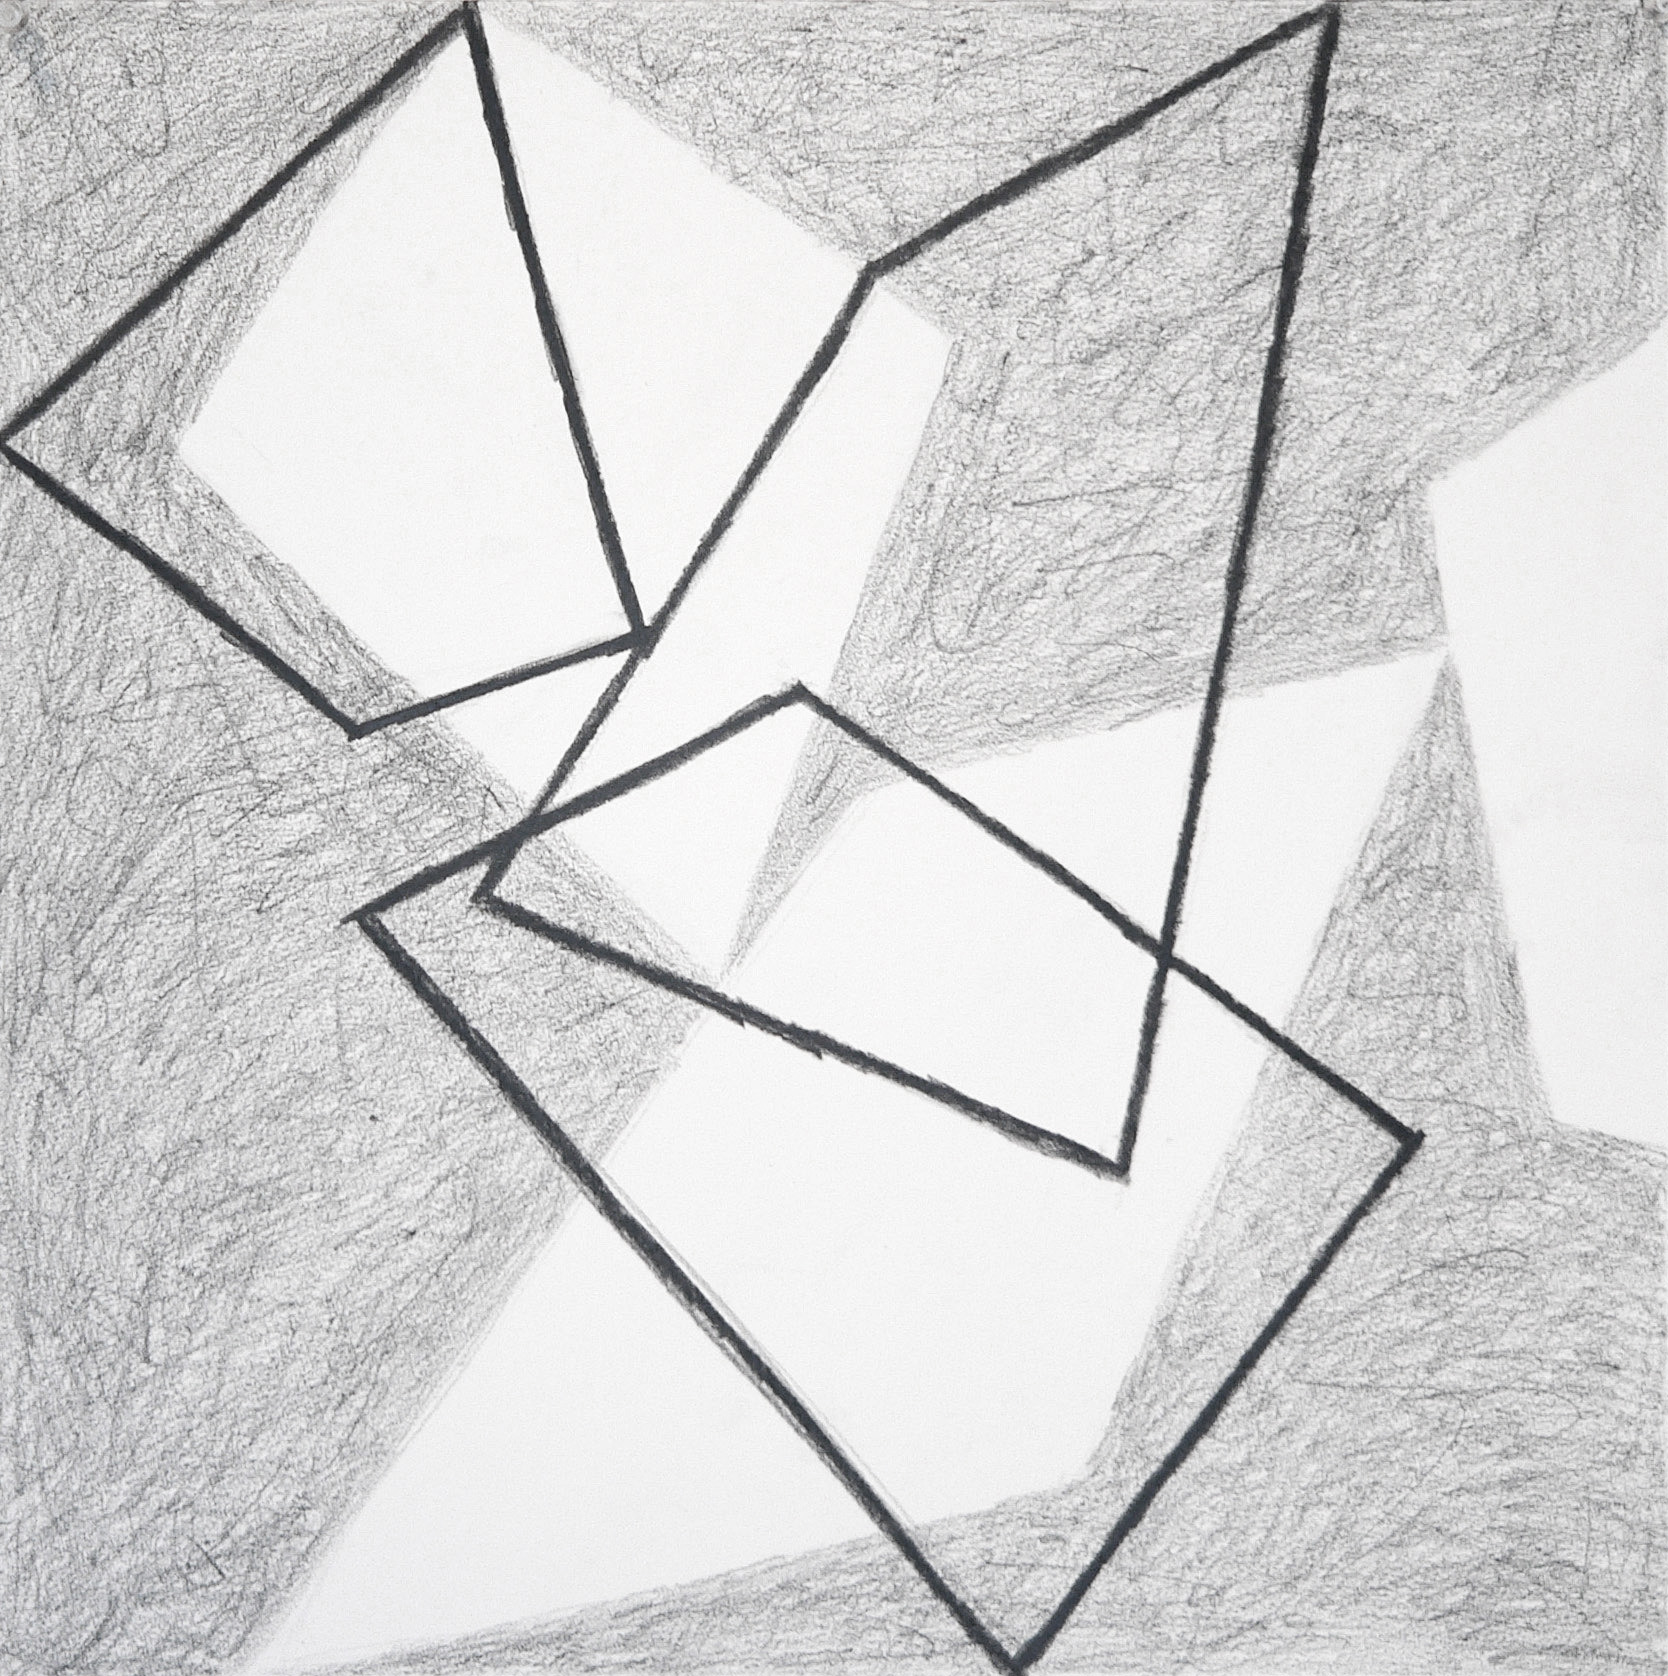 Bounce 2   18 x 18 in  Graphite on Canson Pastelle Paper